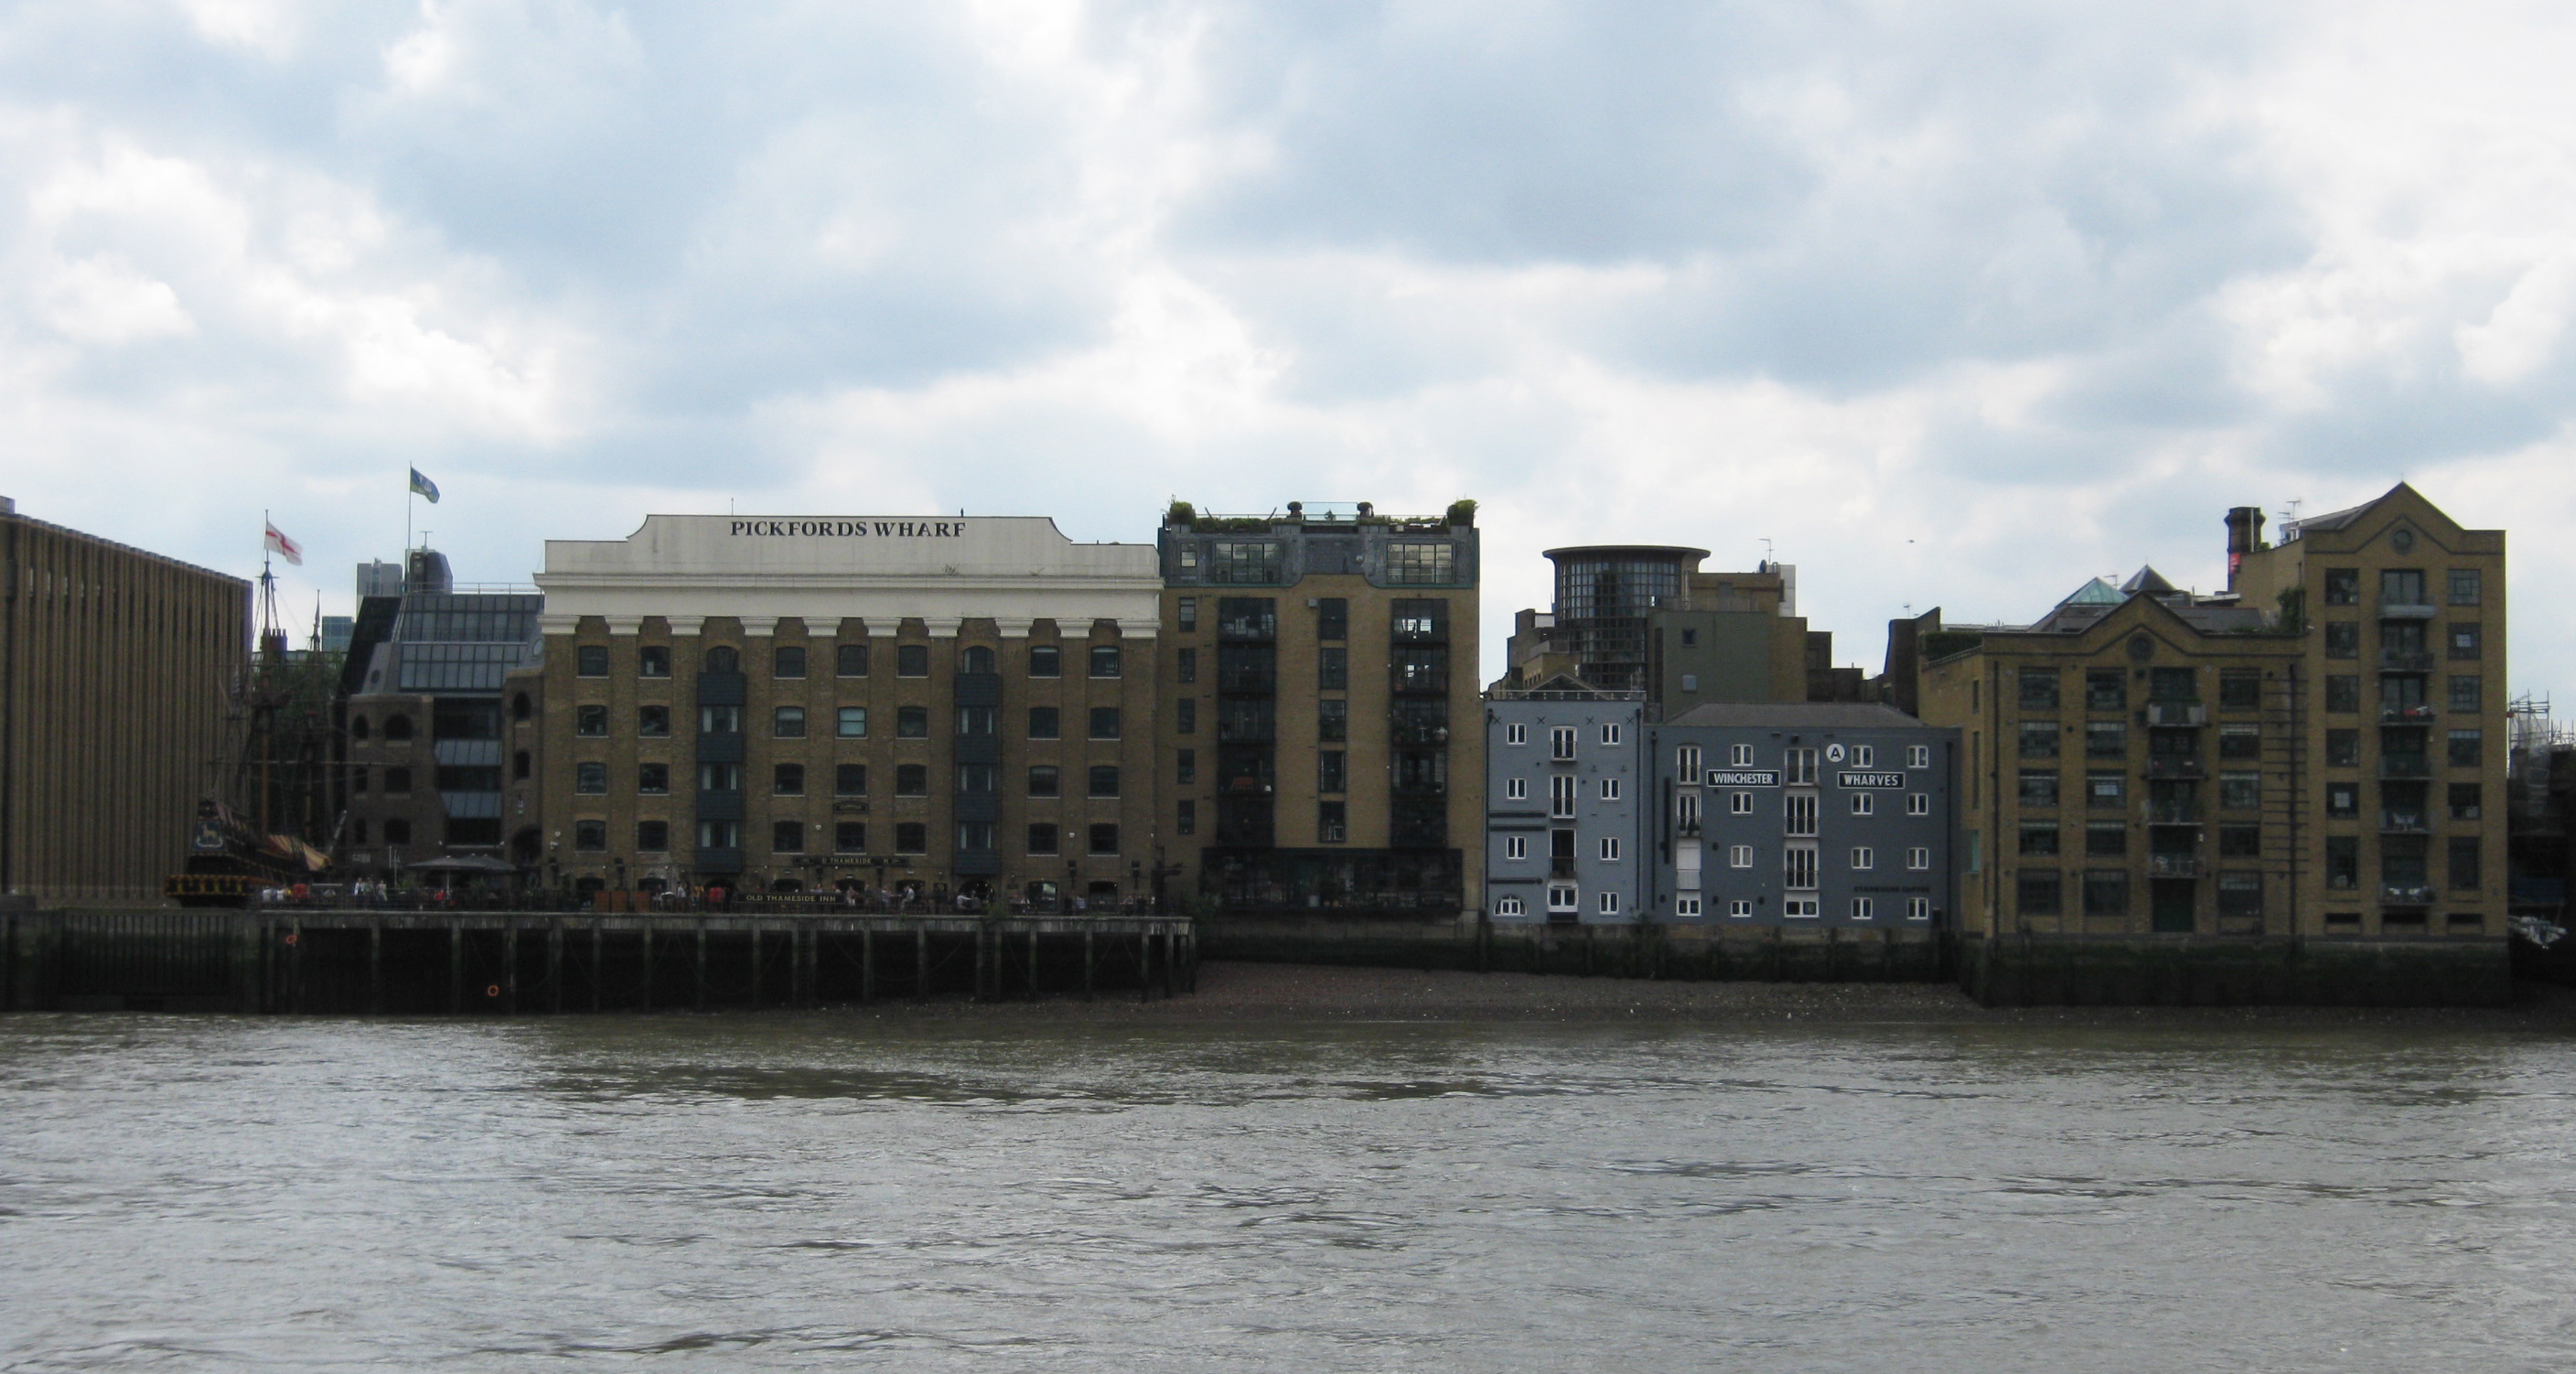 Horseshoe Wharf from riverside